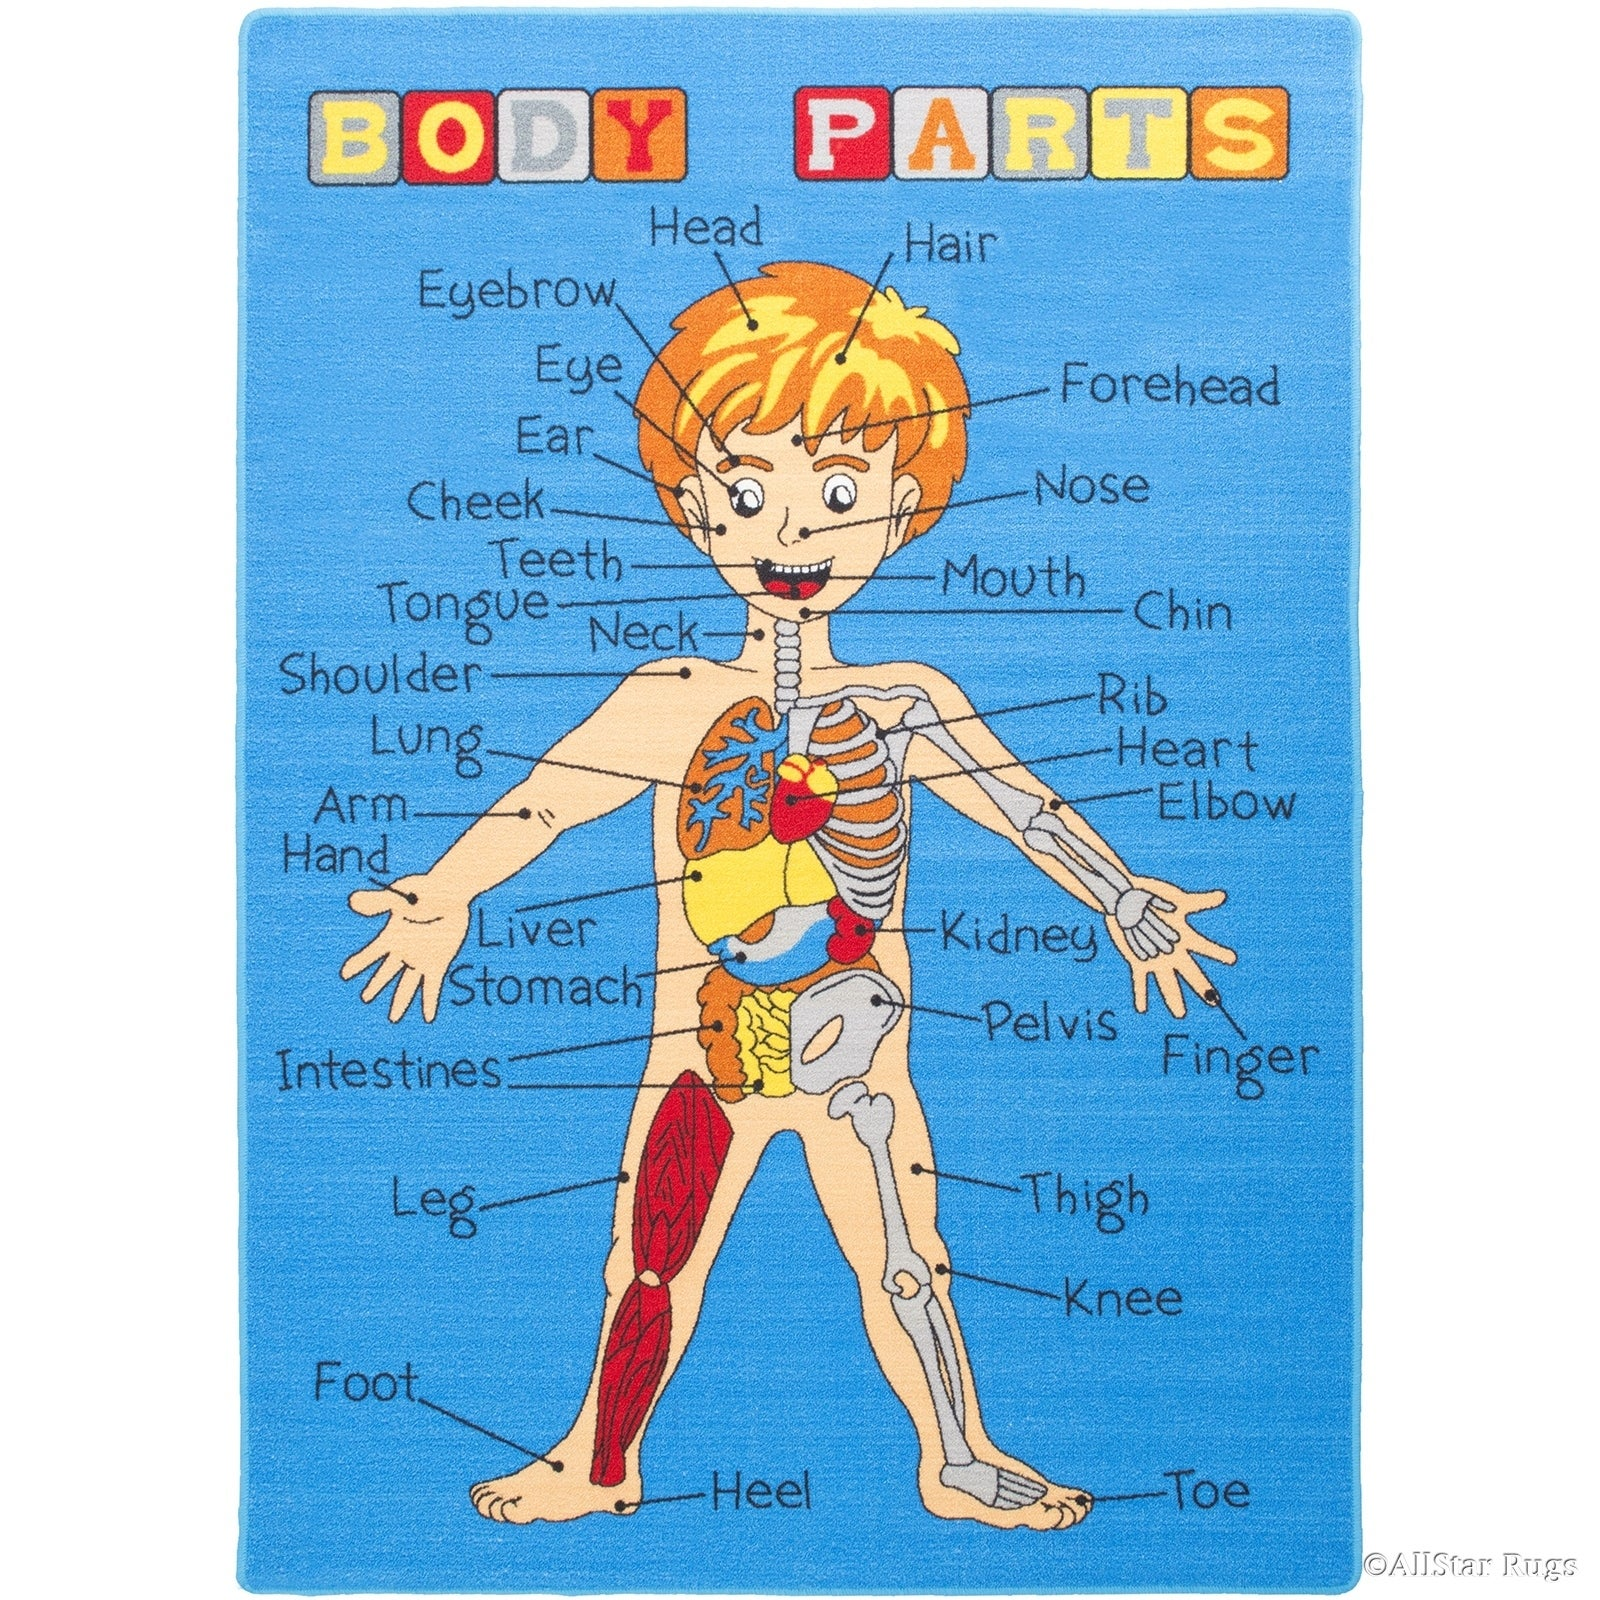 Unique All About Anatomy Image Physiology Of Human Body Images